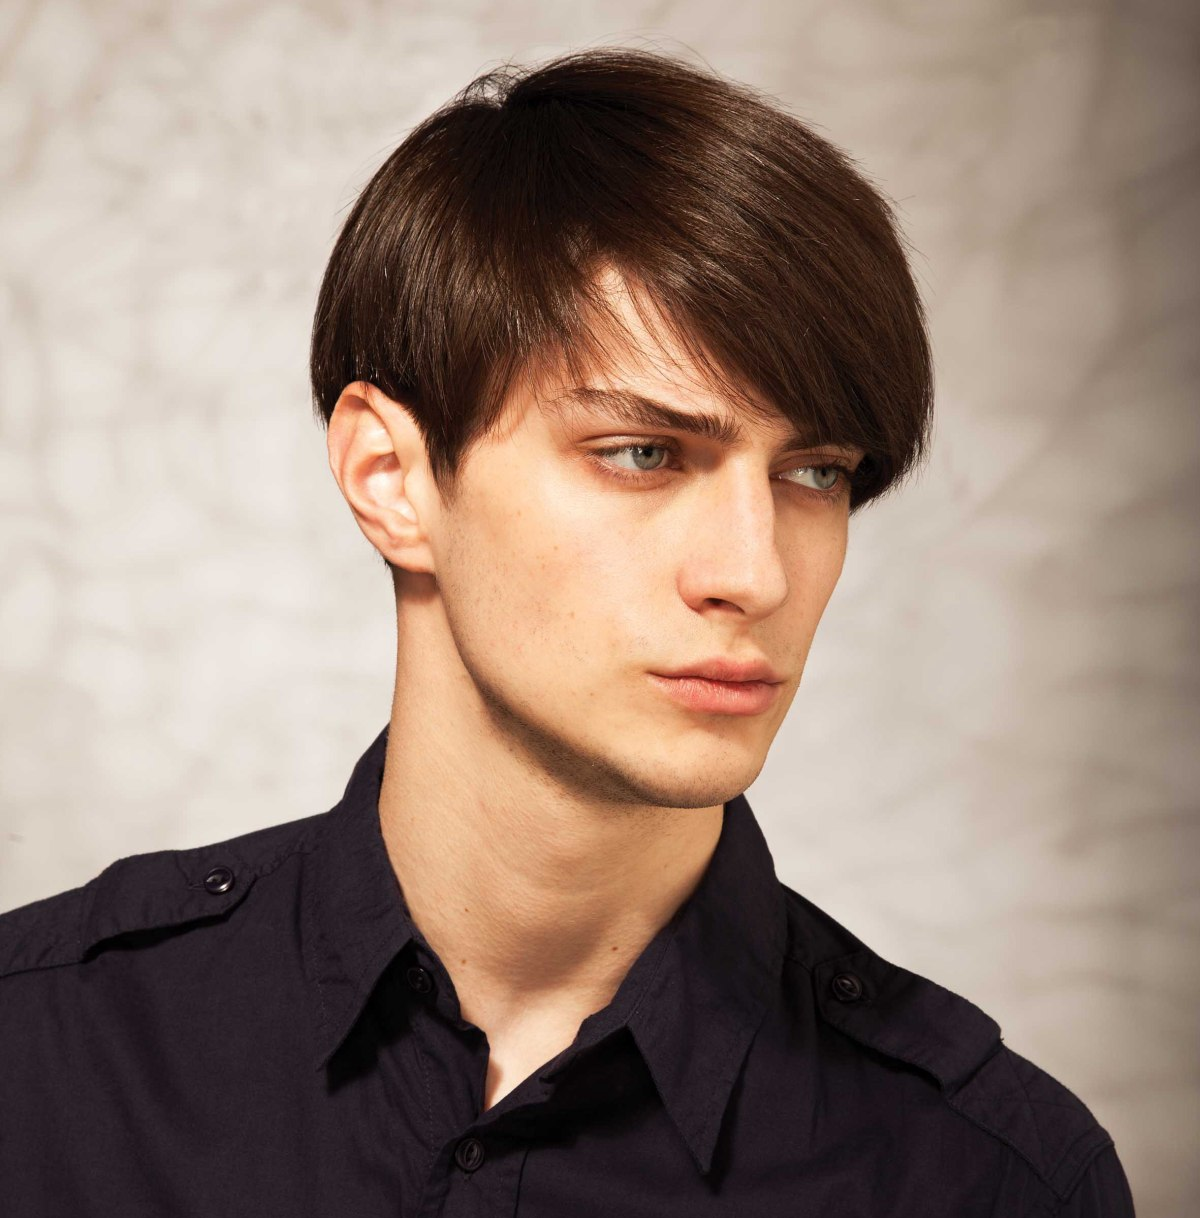 Tremendous Long Fringe Hairstyle For Men With Thick Hair Short Hairstyles Gunalazisus